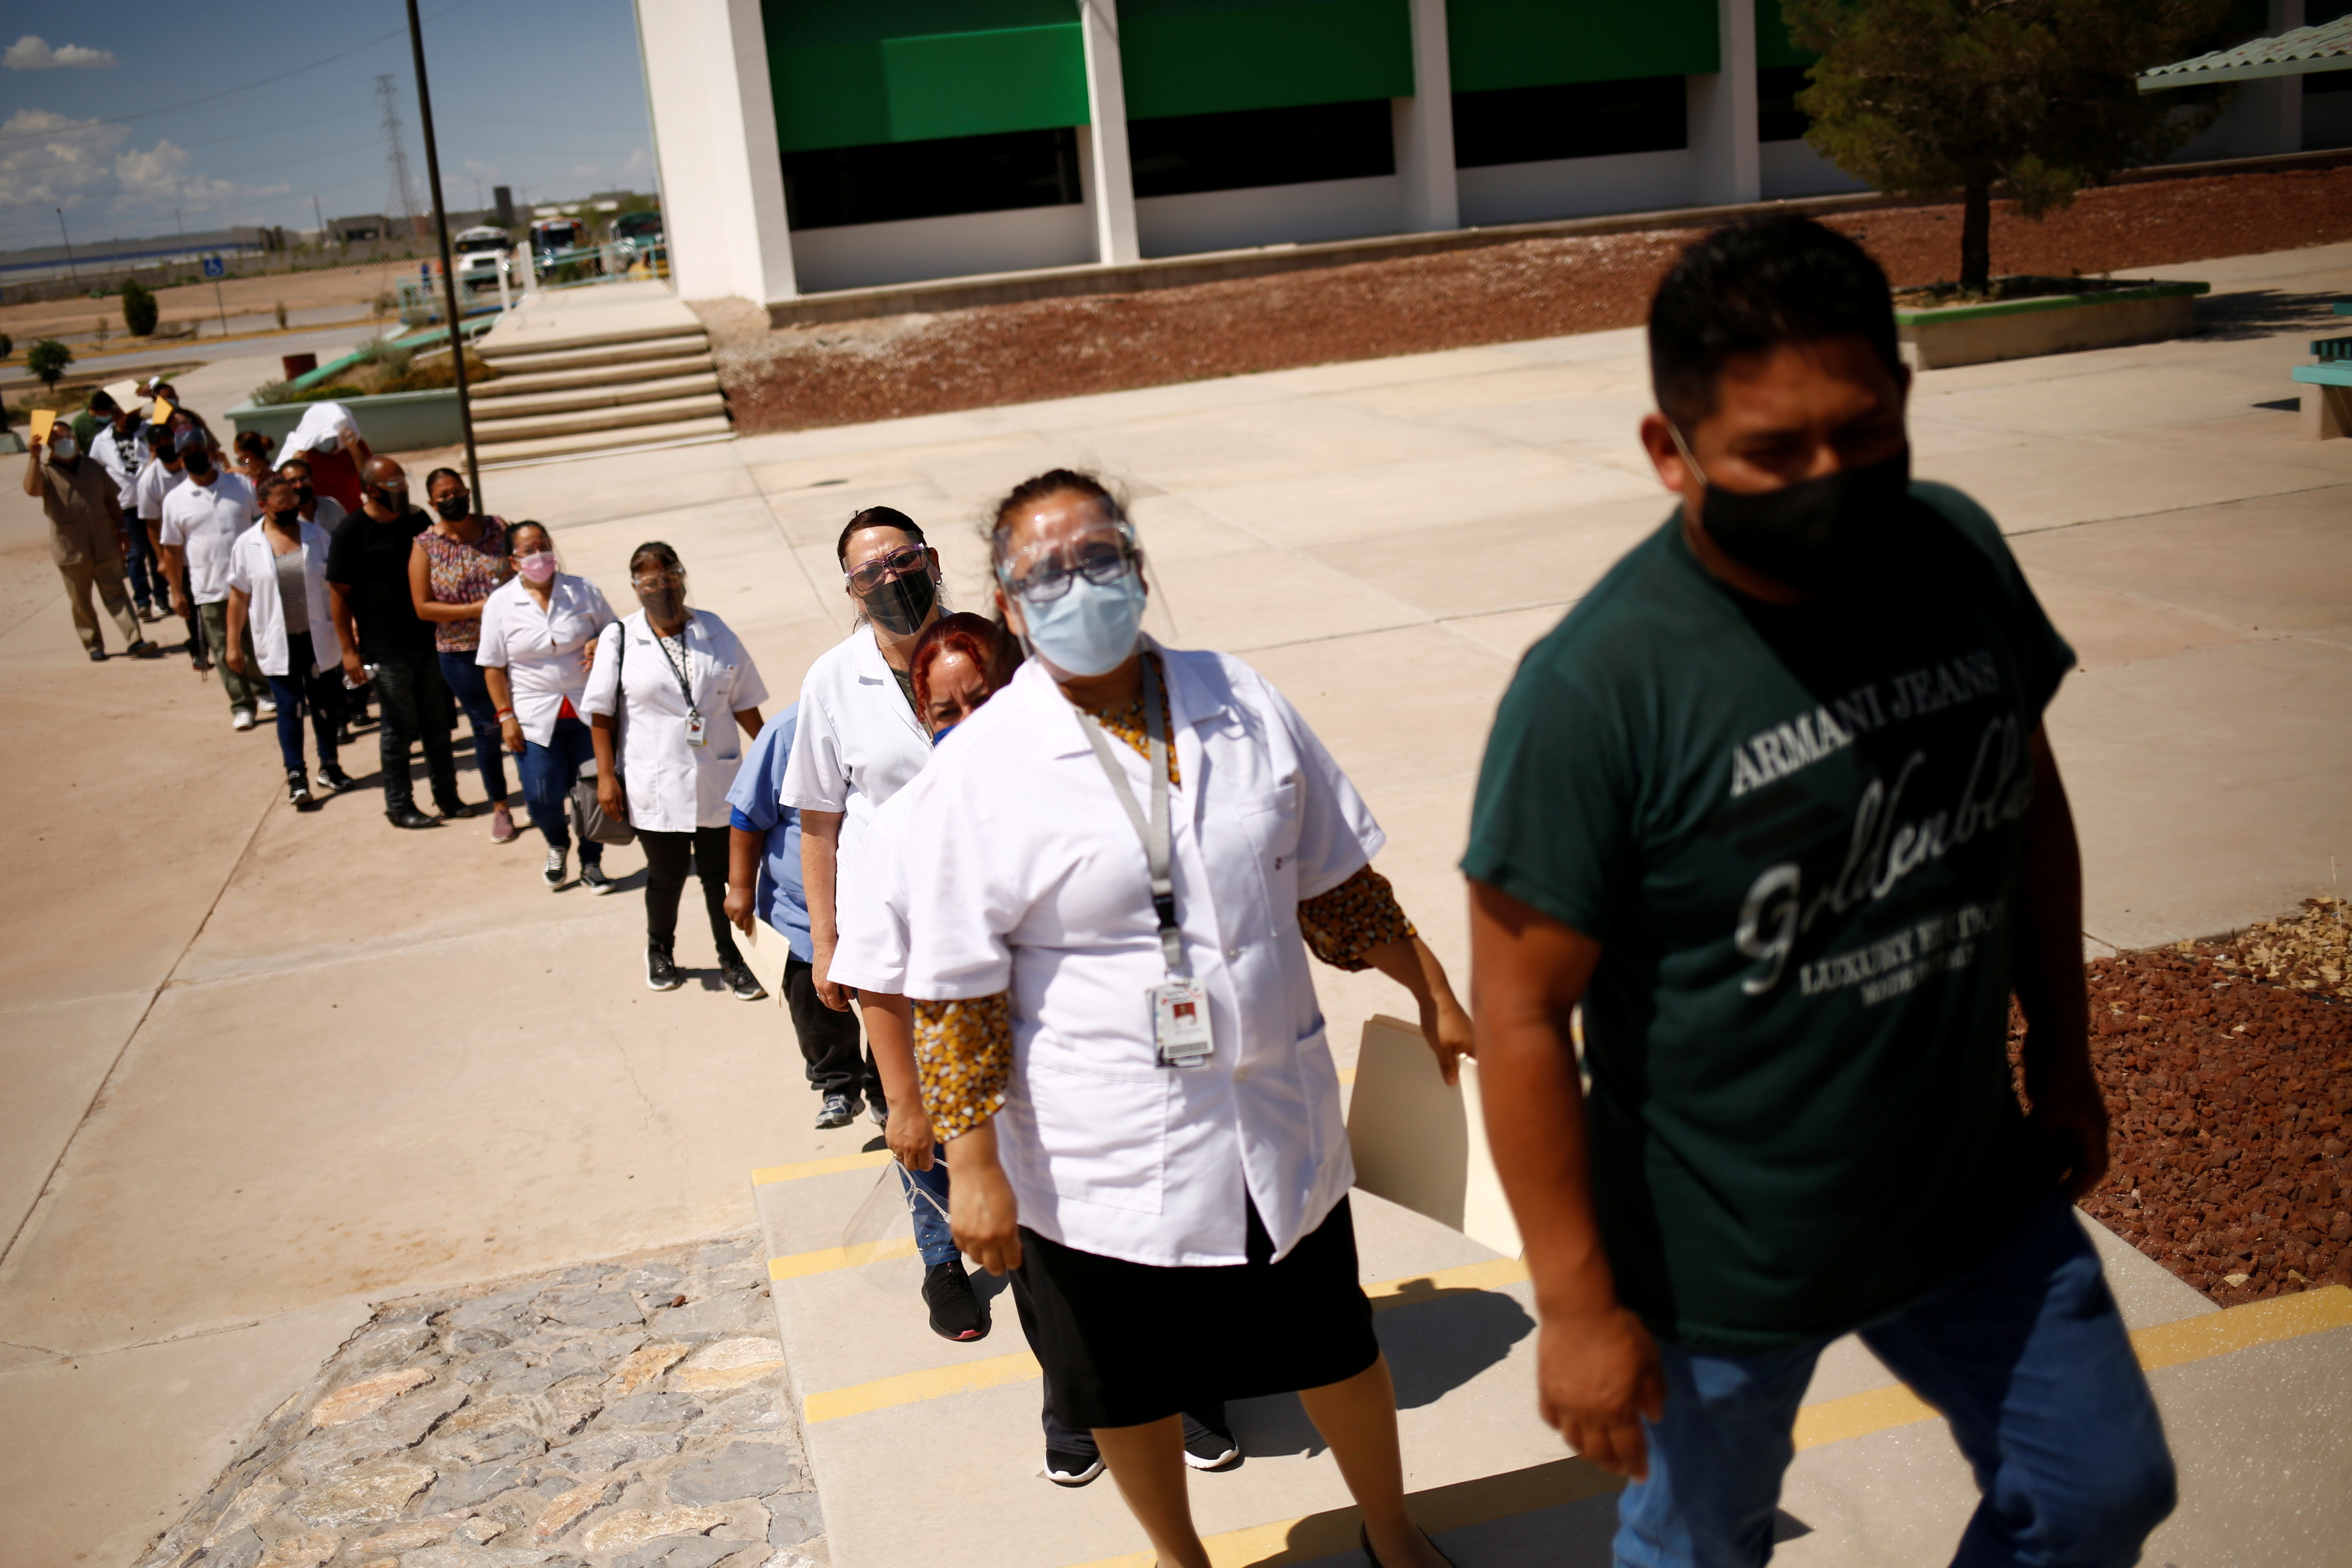 Employees of an assembly factory queue to receive a dose of the Pfizer-BioNTech coronavirus disease (COVID-19) vaccine during a mass vaccination program for people over 40 years of age at a university in Ciudad Juarez, Mexico July 5, 2021. REUTERS/Jose Luis Gonzalez - RC2FEO9TUDY4